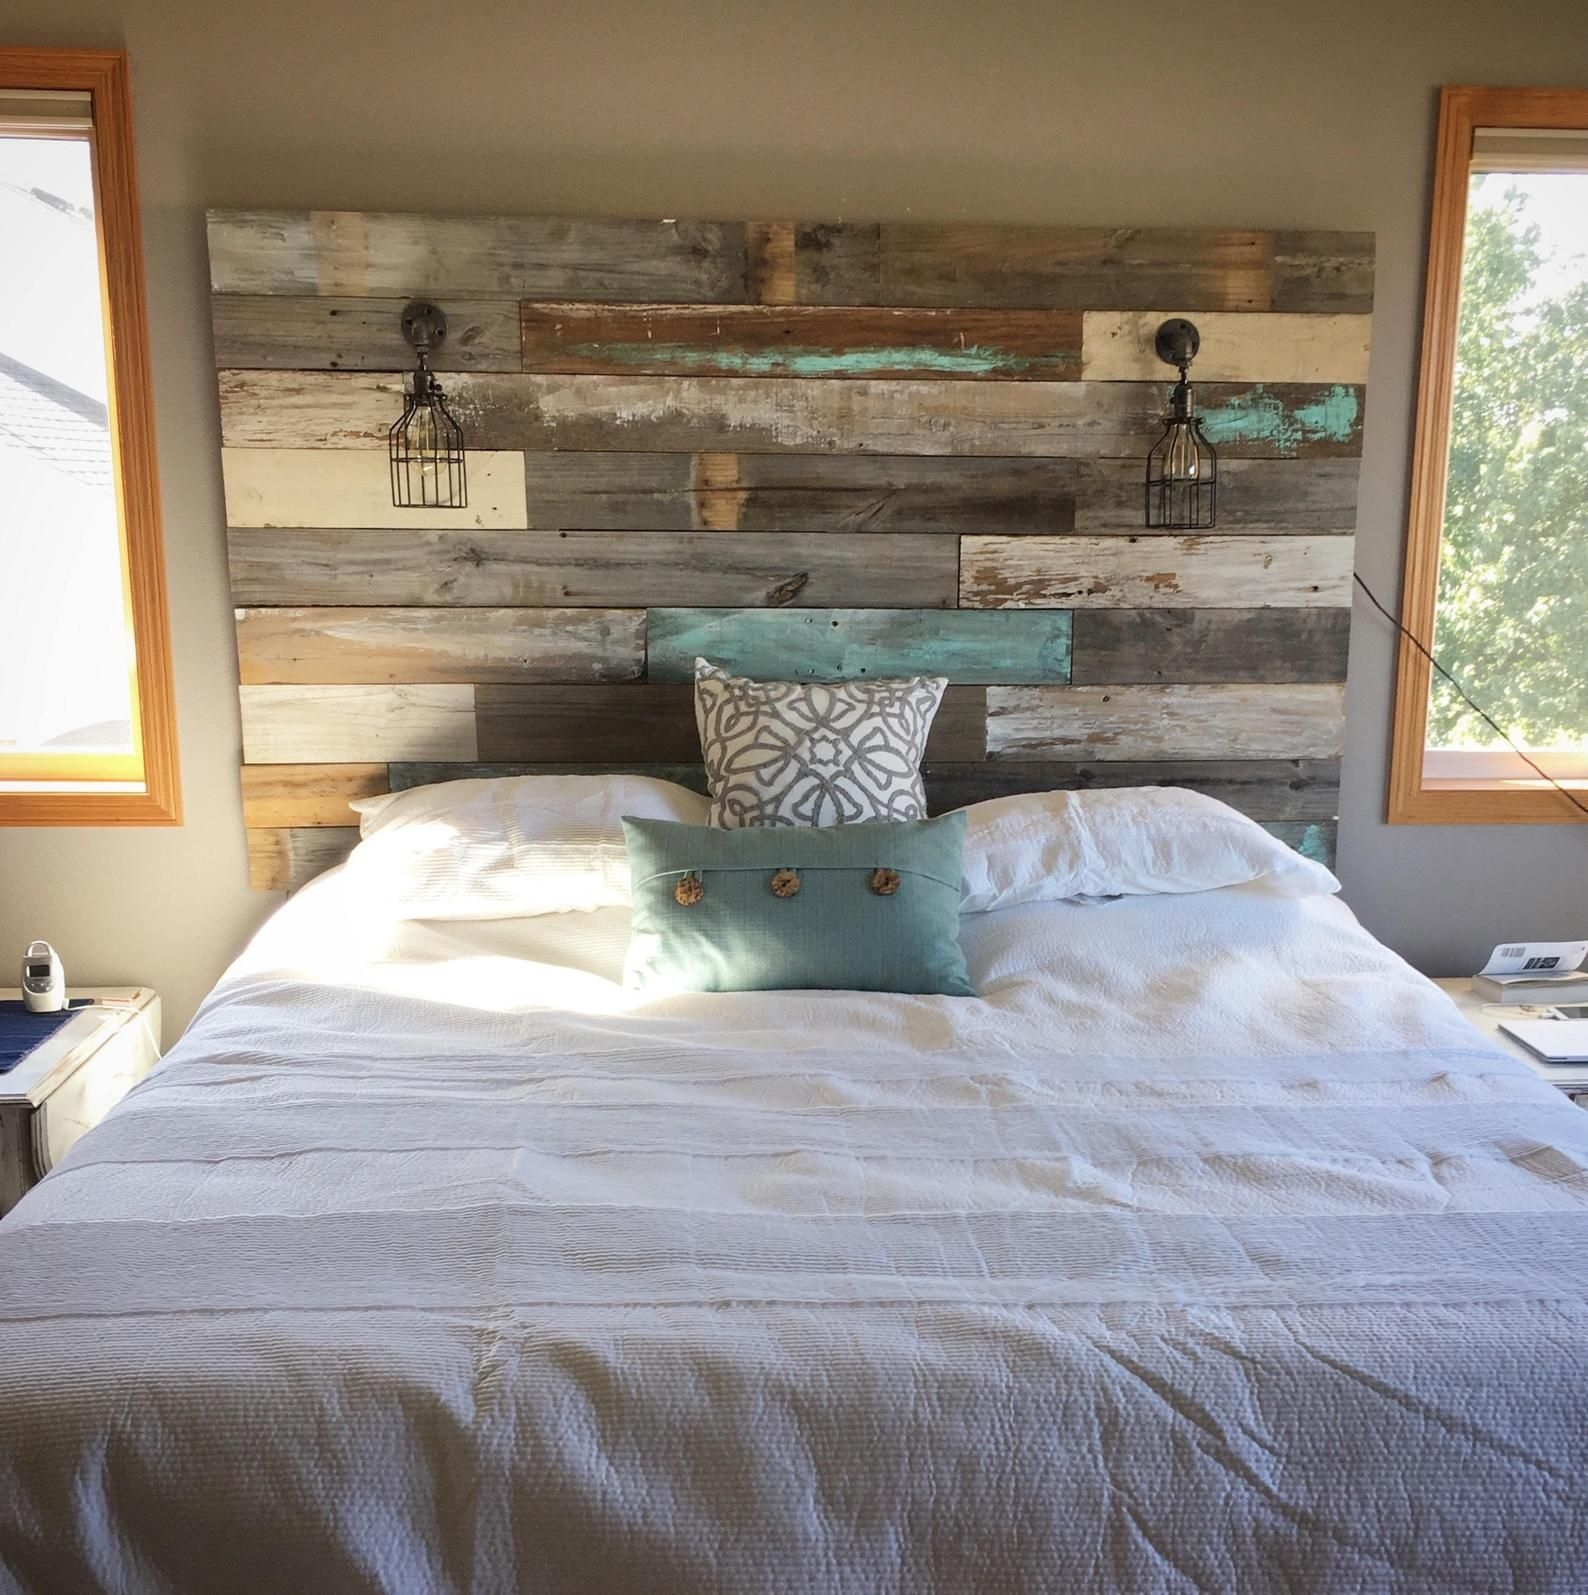 Amazing Headboard Design Ideas For Beds That Look Great32